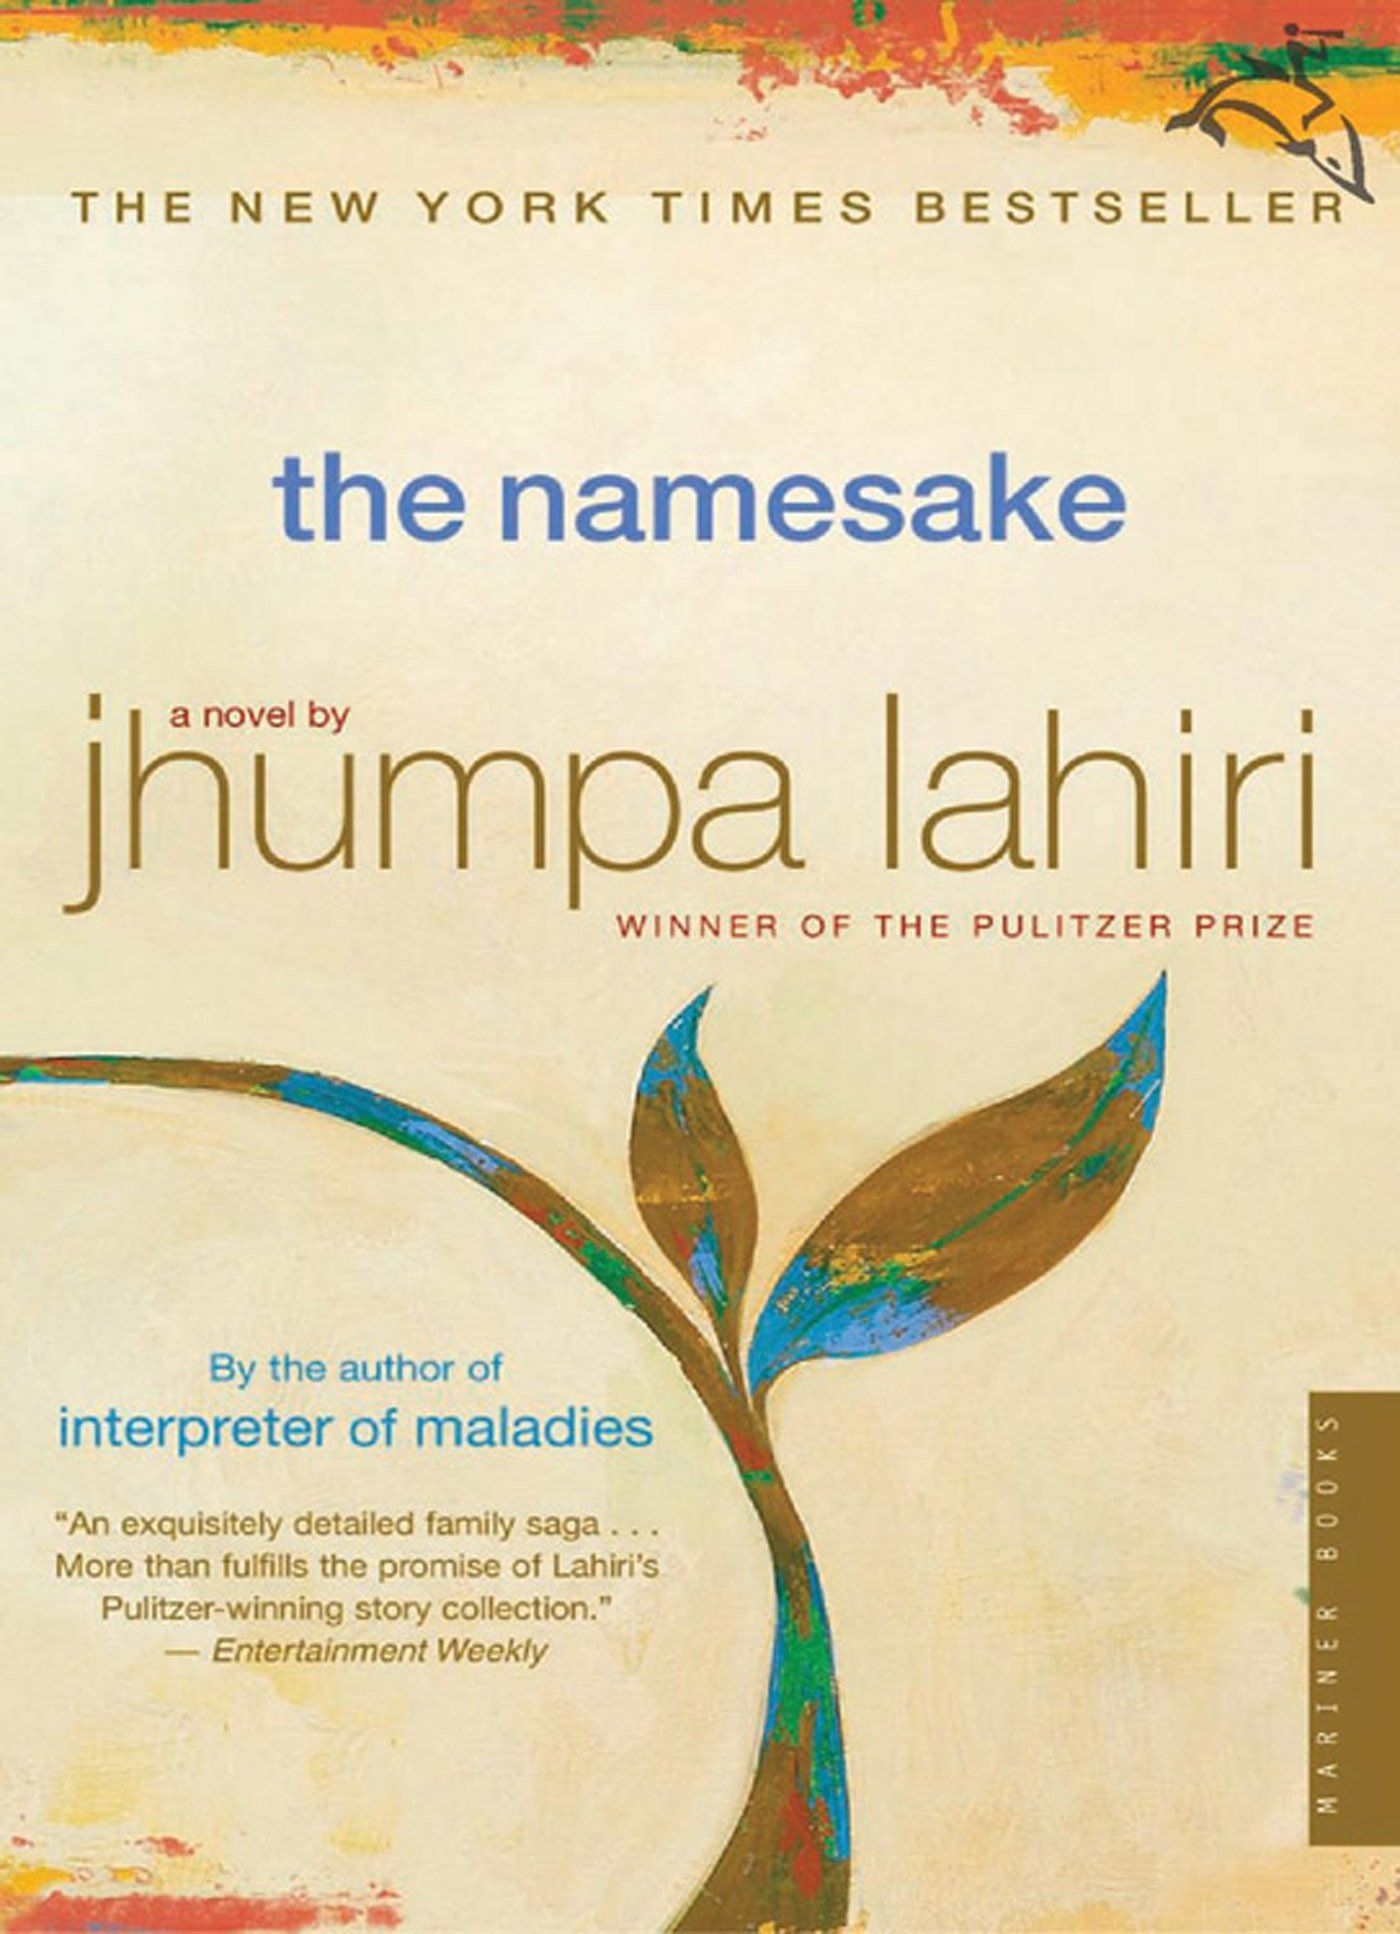 The Namesake (Indian family tries to hold onto traditions in America while raising a family) | Jhumpa lahiri, Good books, Books